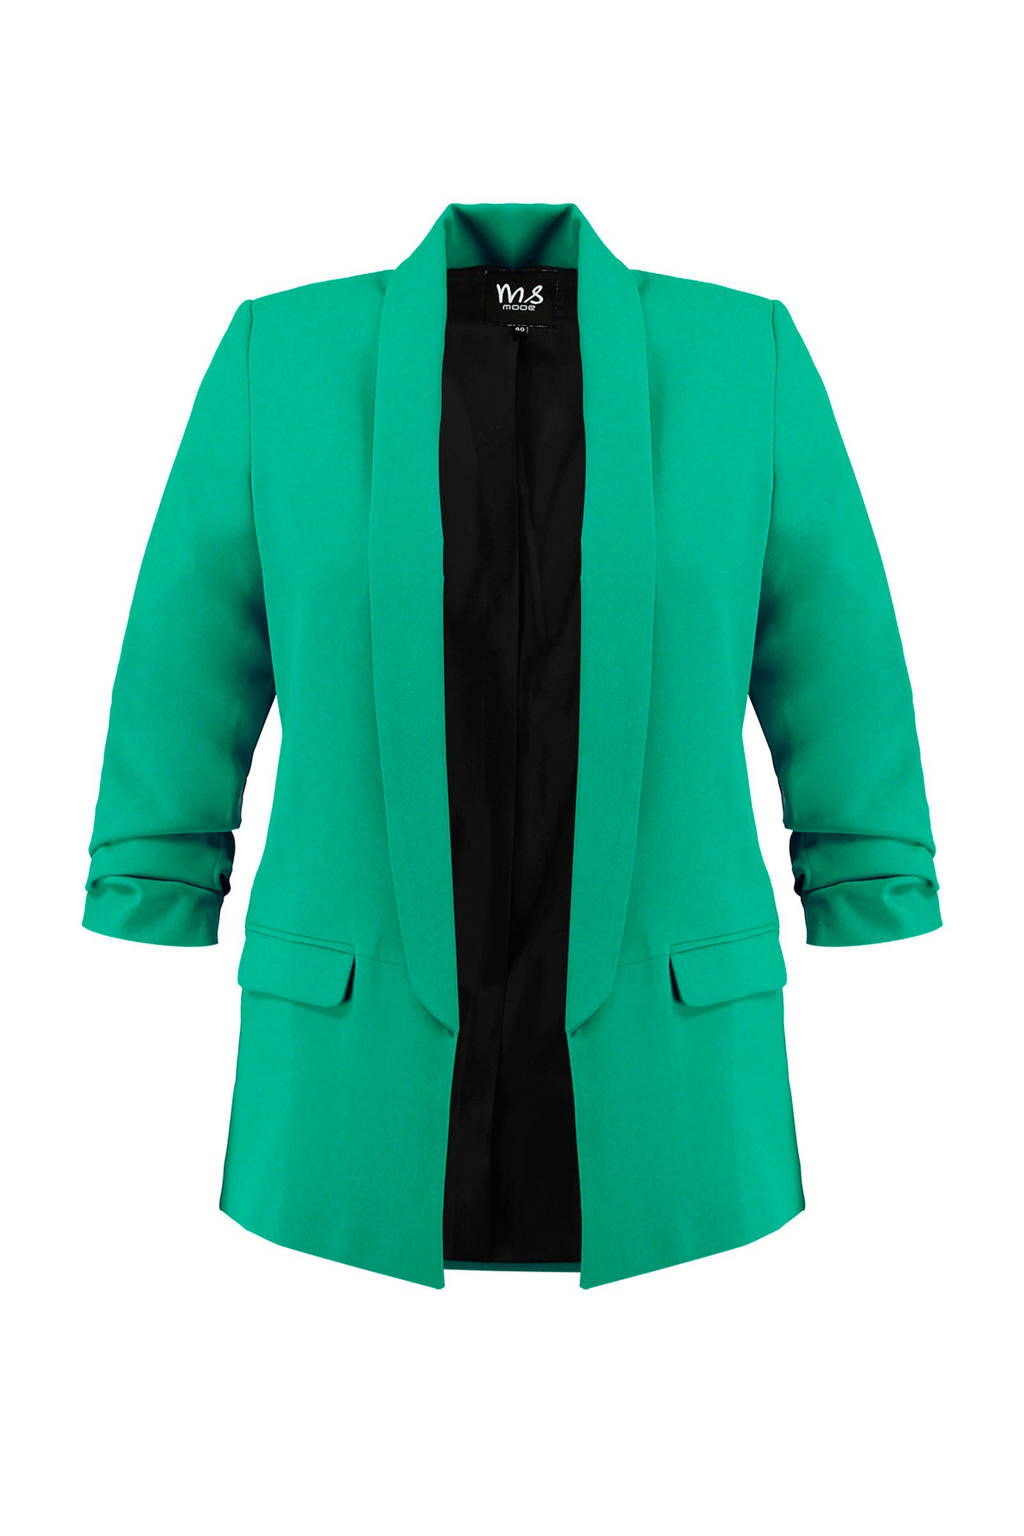 MS Mode blazer groen, Groen